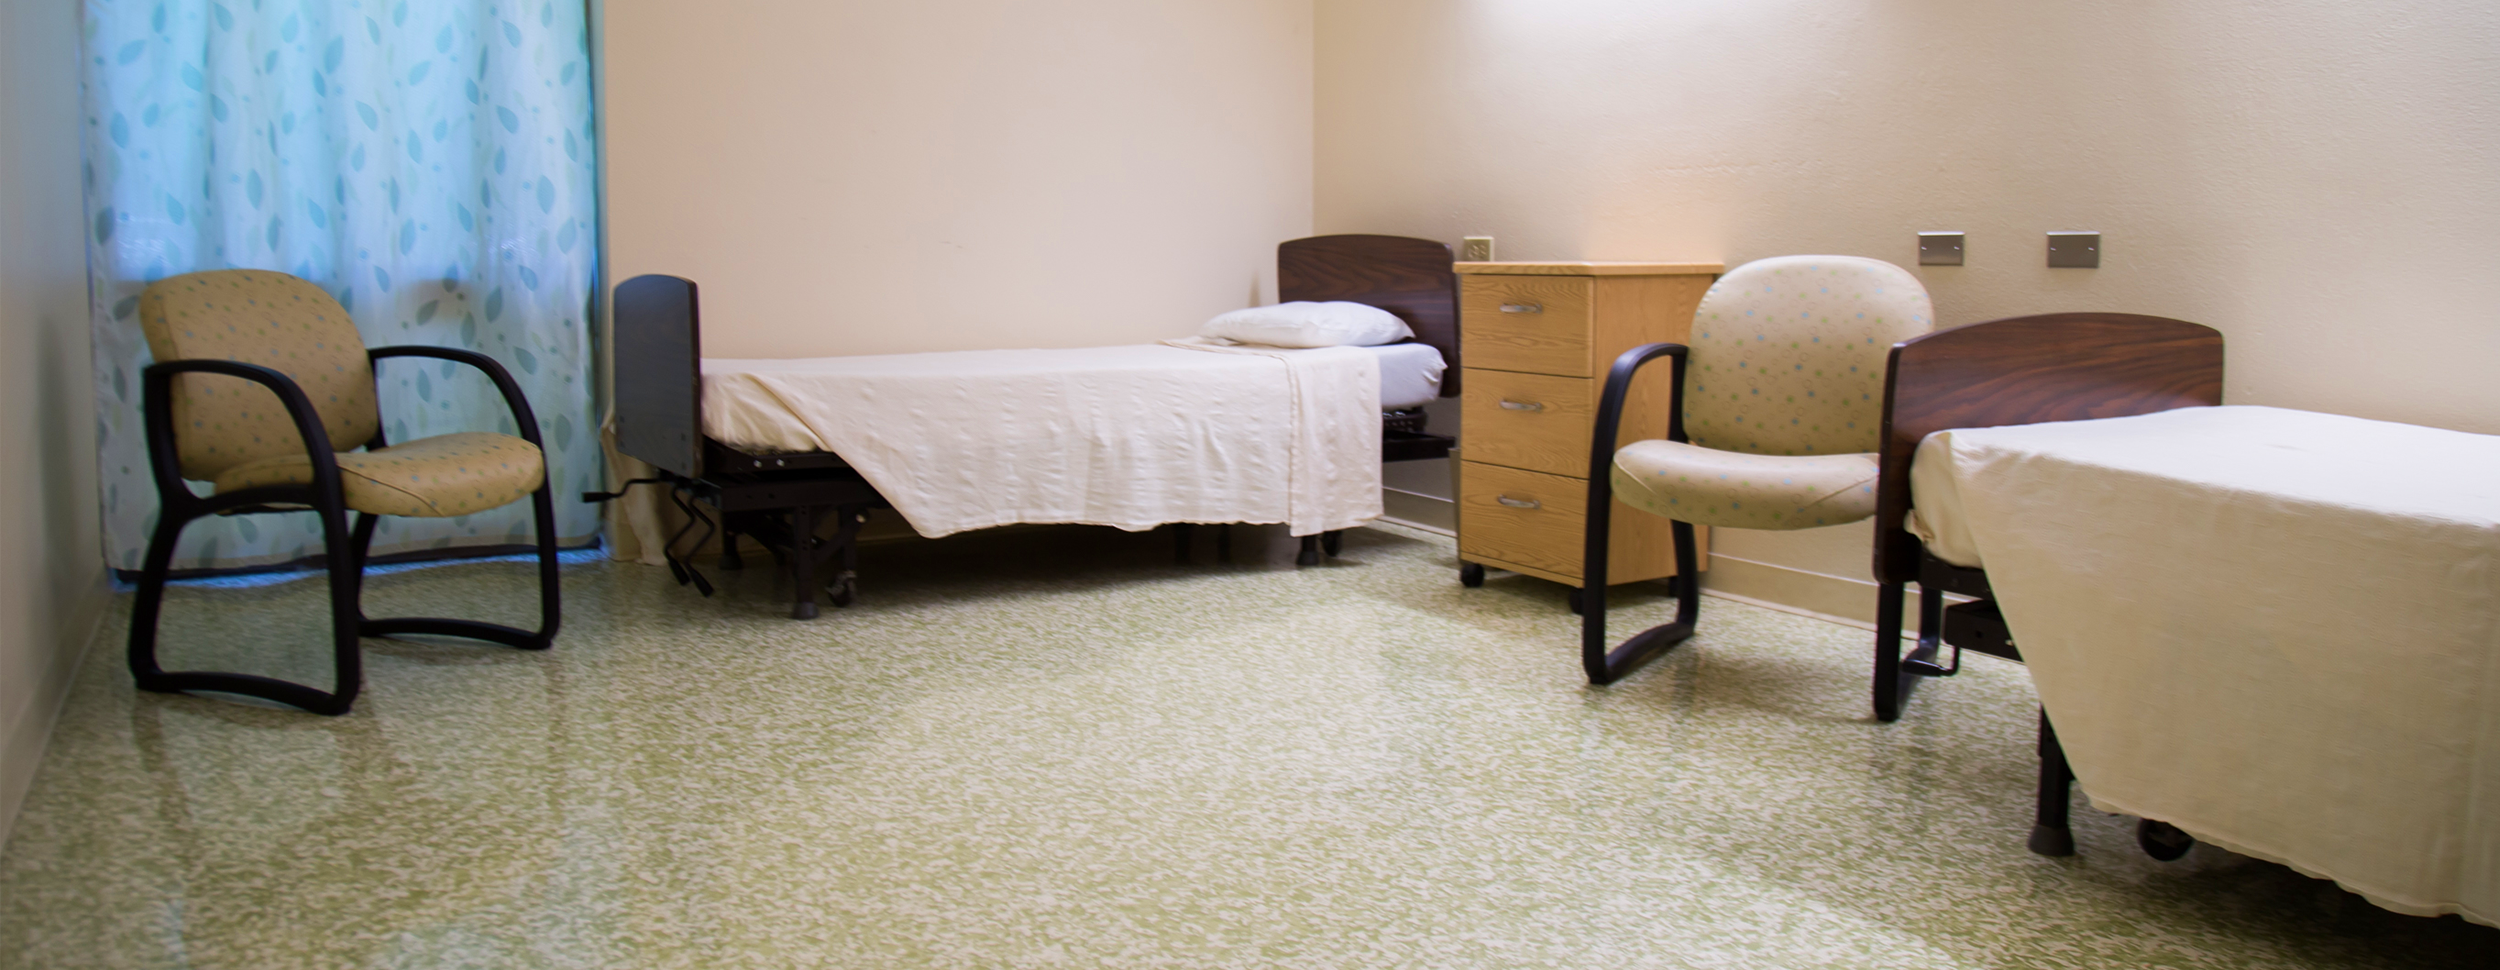 Senior Behavioral Health Unit - Room